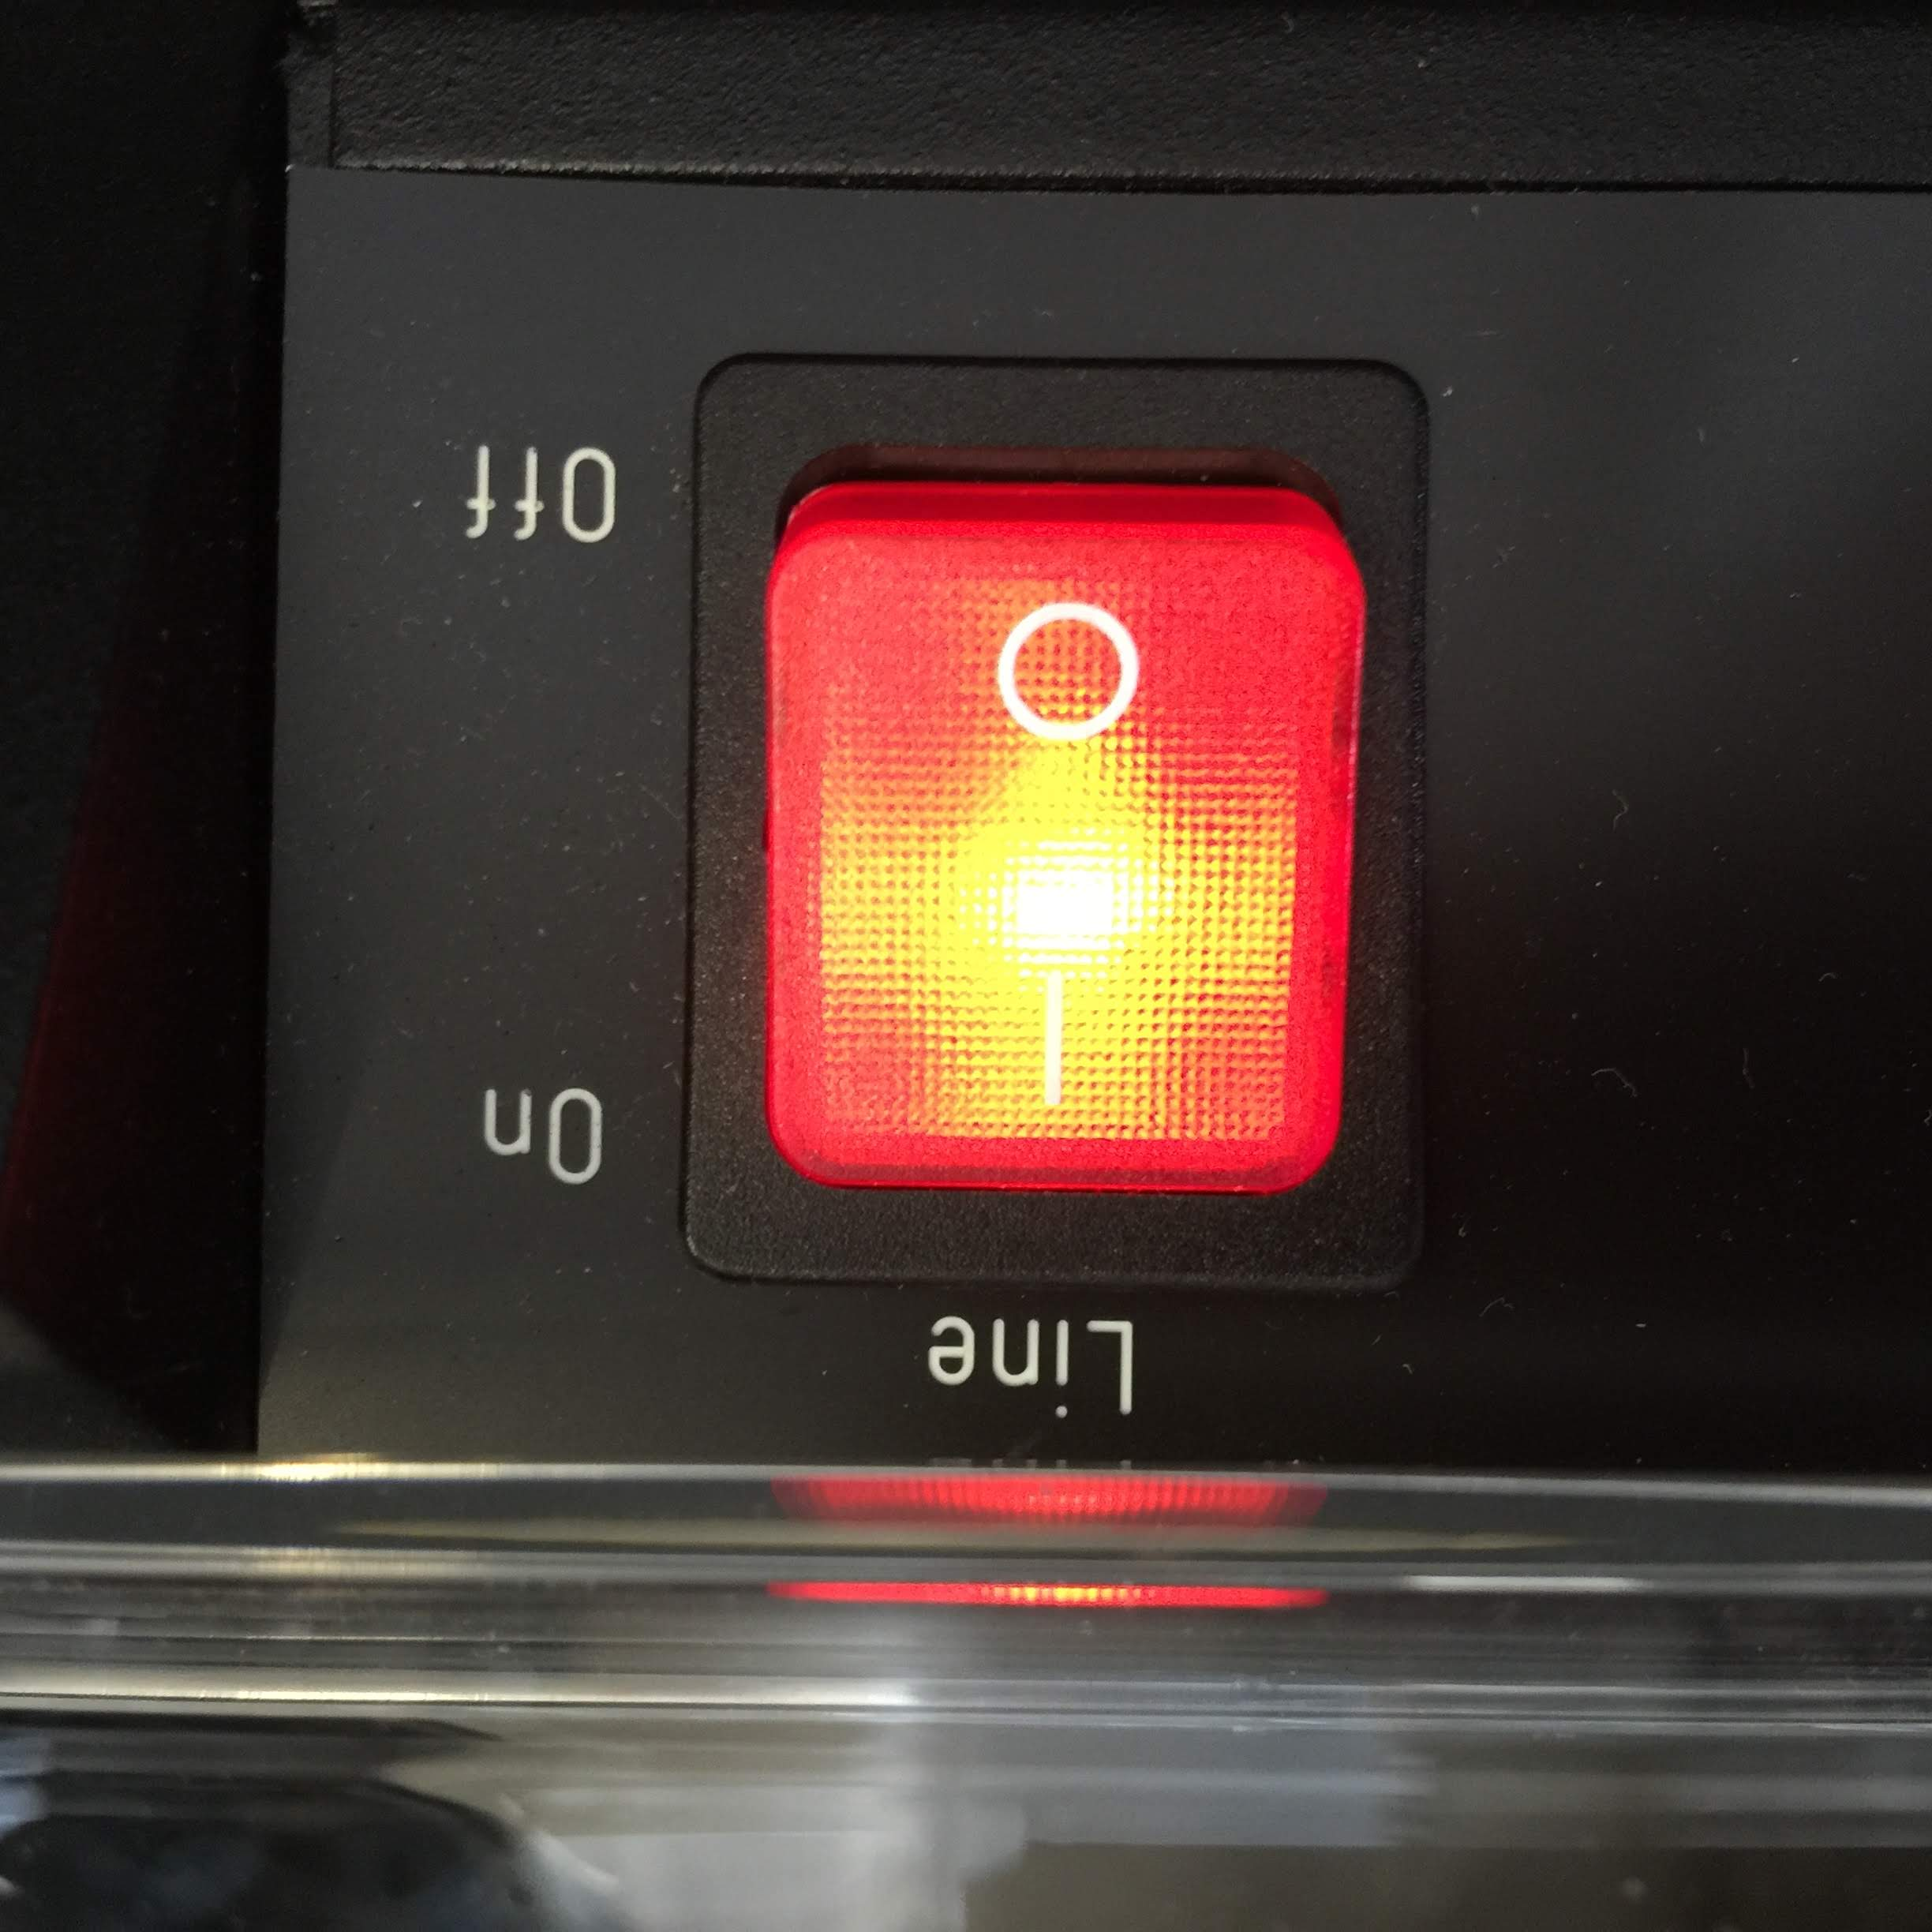 On/Off Switch, Lights up When Powered On